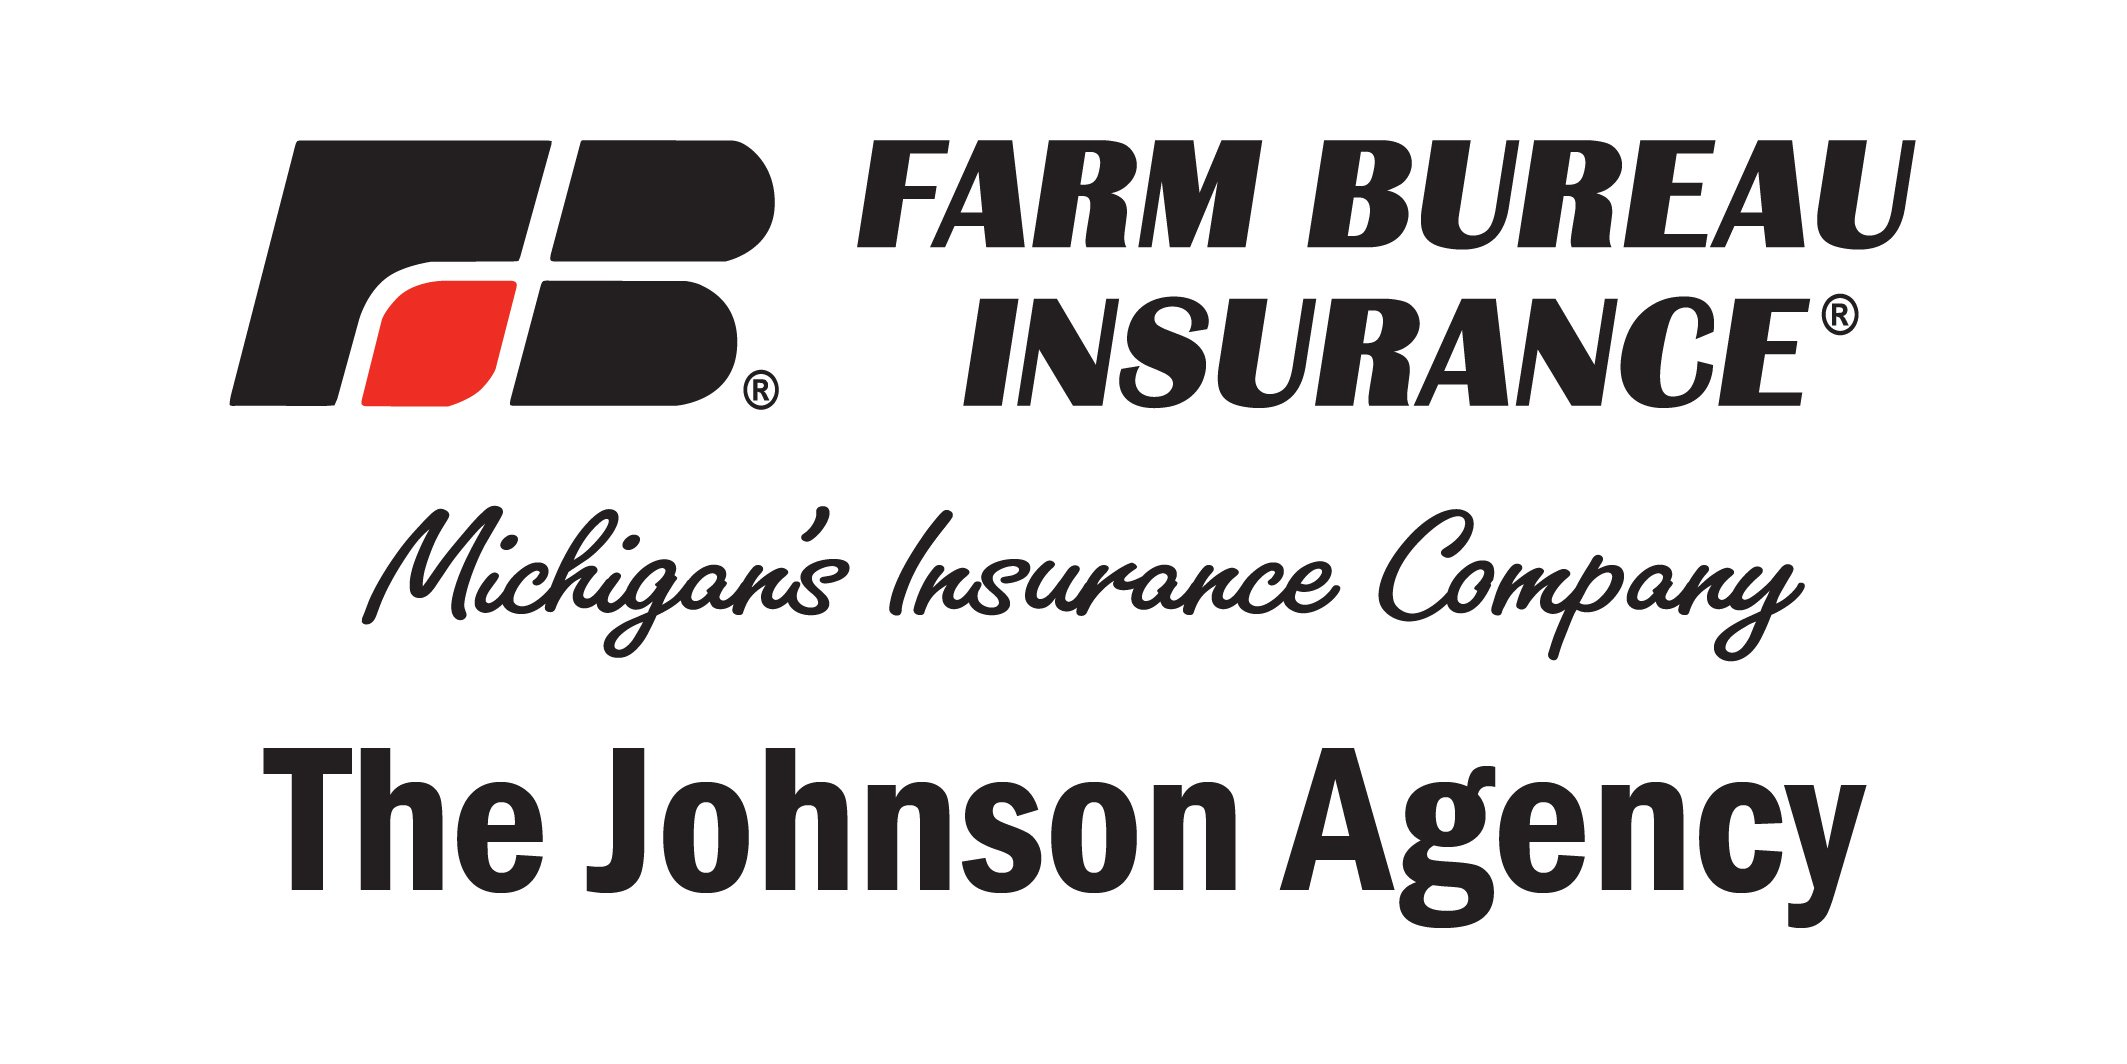 Farm Bureau Insurance - Mark Johnson Agency (The Johnson Agency) logo